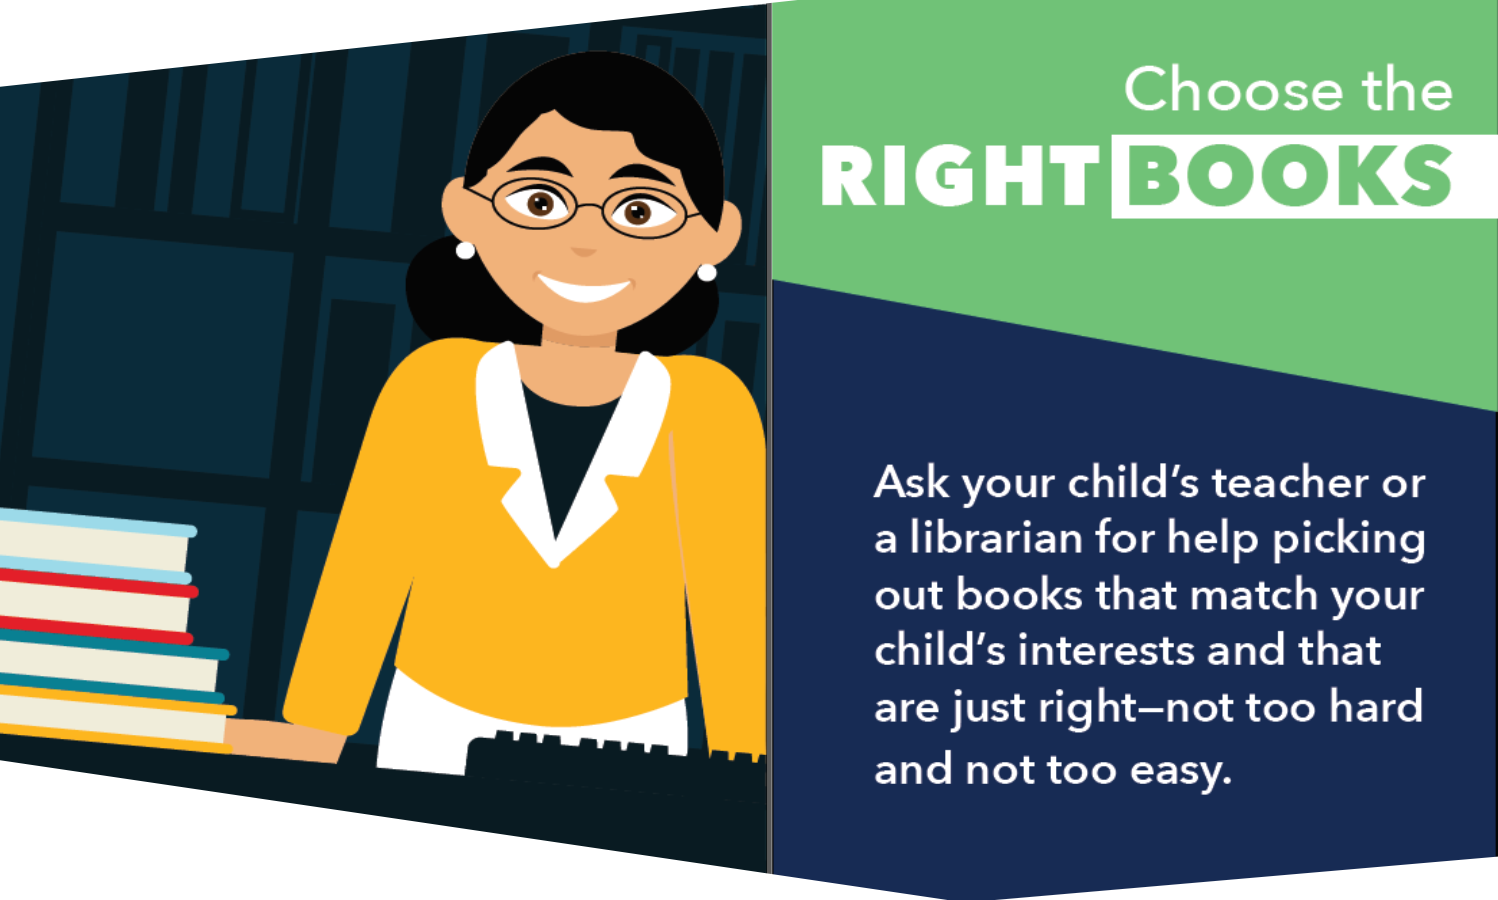 Choose the right books. Ask your child's teacher or a librarian for help picking out books that match your child's interests and that are just right - not too hard and not too easy.